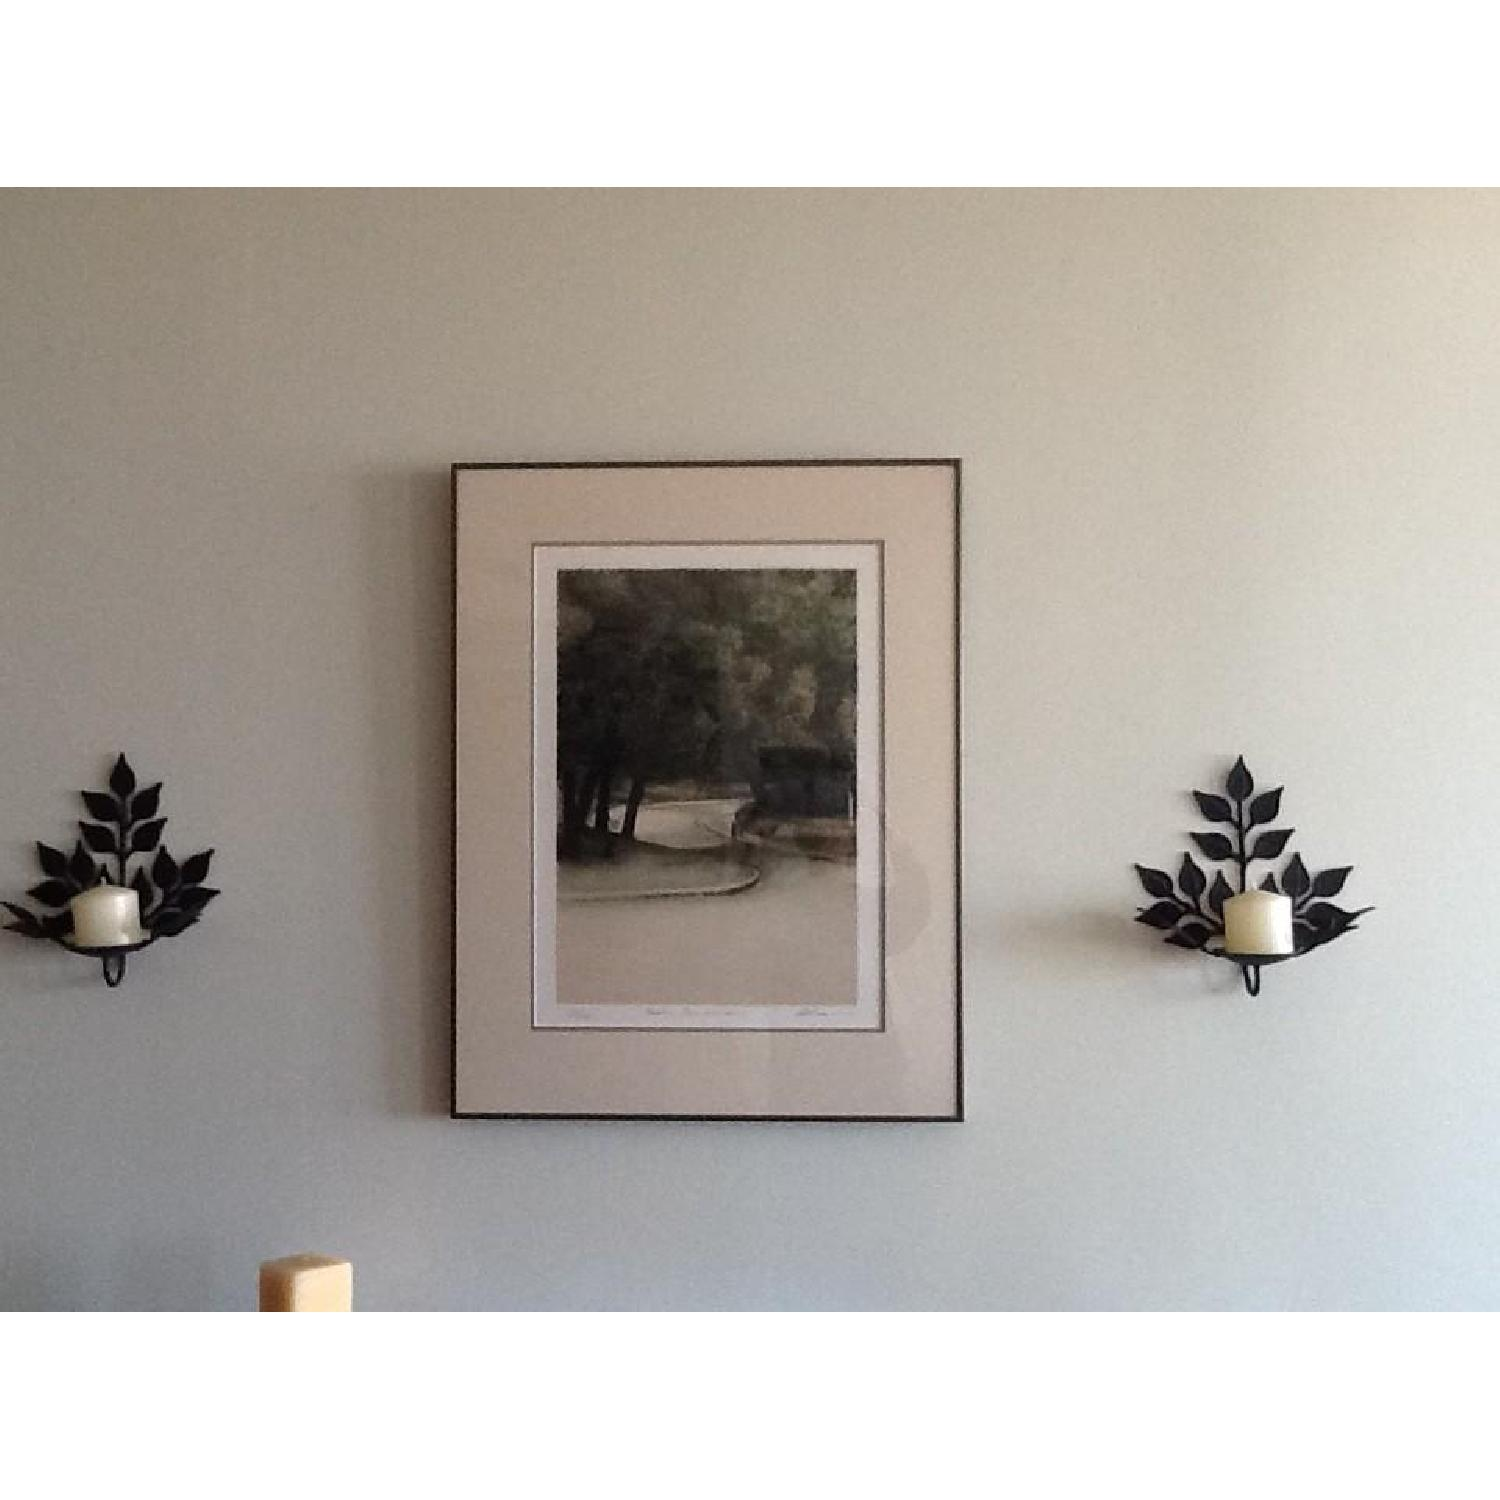 Harold Altman Numbered & Penciled Signed Lithograph - Parc Montsouris - image-2